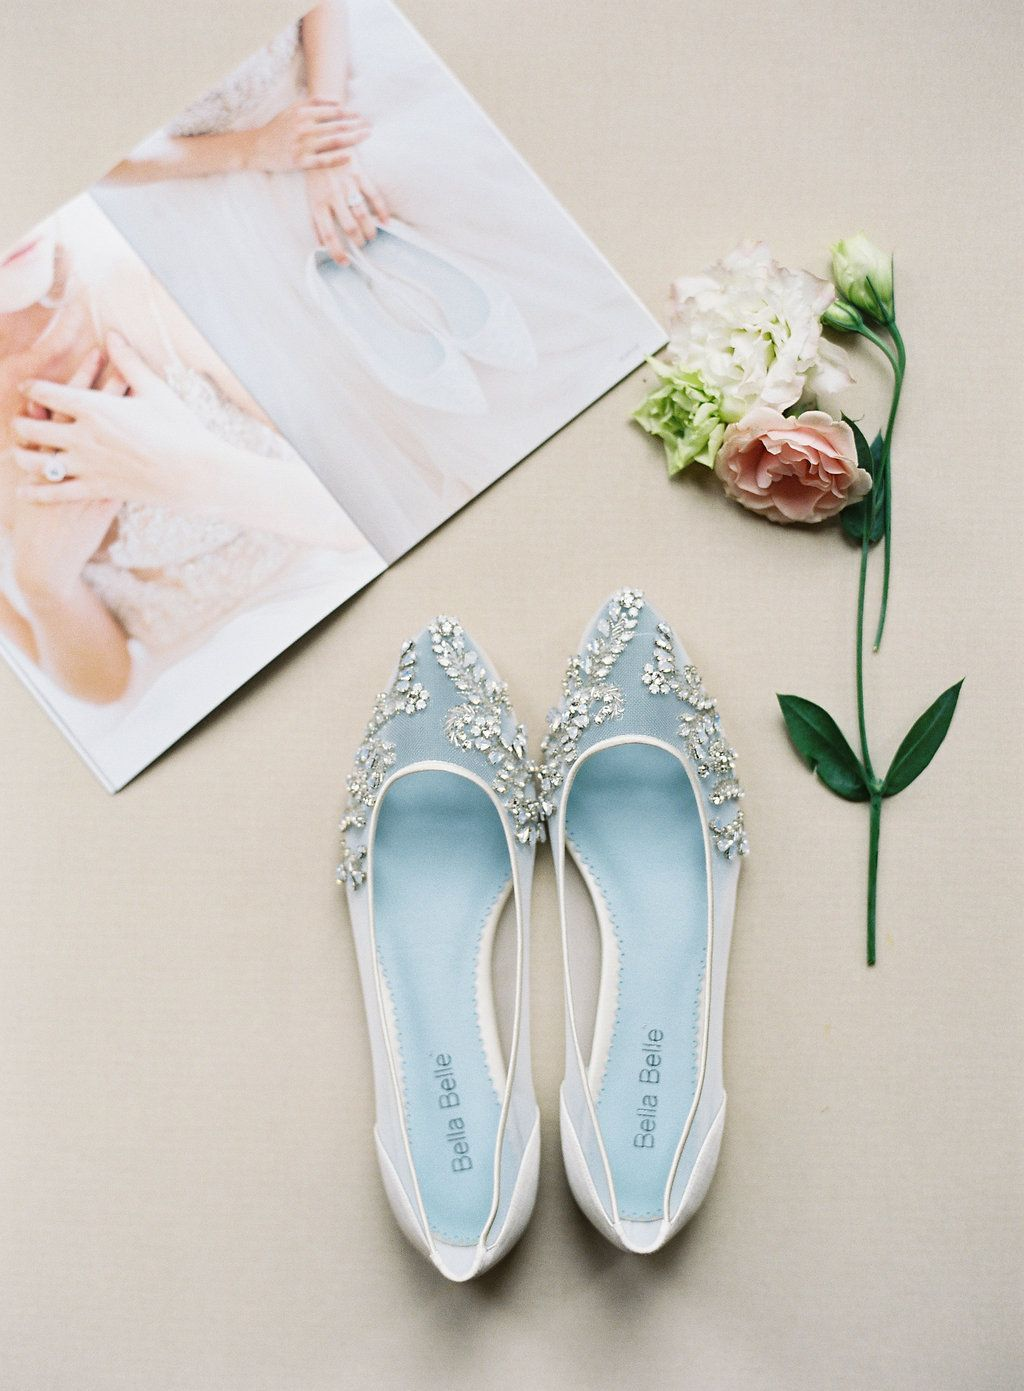 d6943a869eb Romantic and handmade crystal embellished comfortable ivory wedding flats  with hand-beaded milky teardrop rhinestones and beads. Shop comfortable  wedding ...